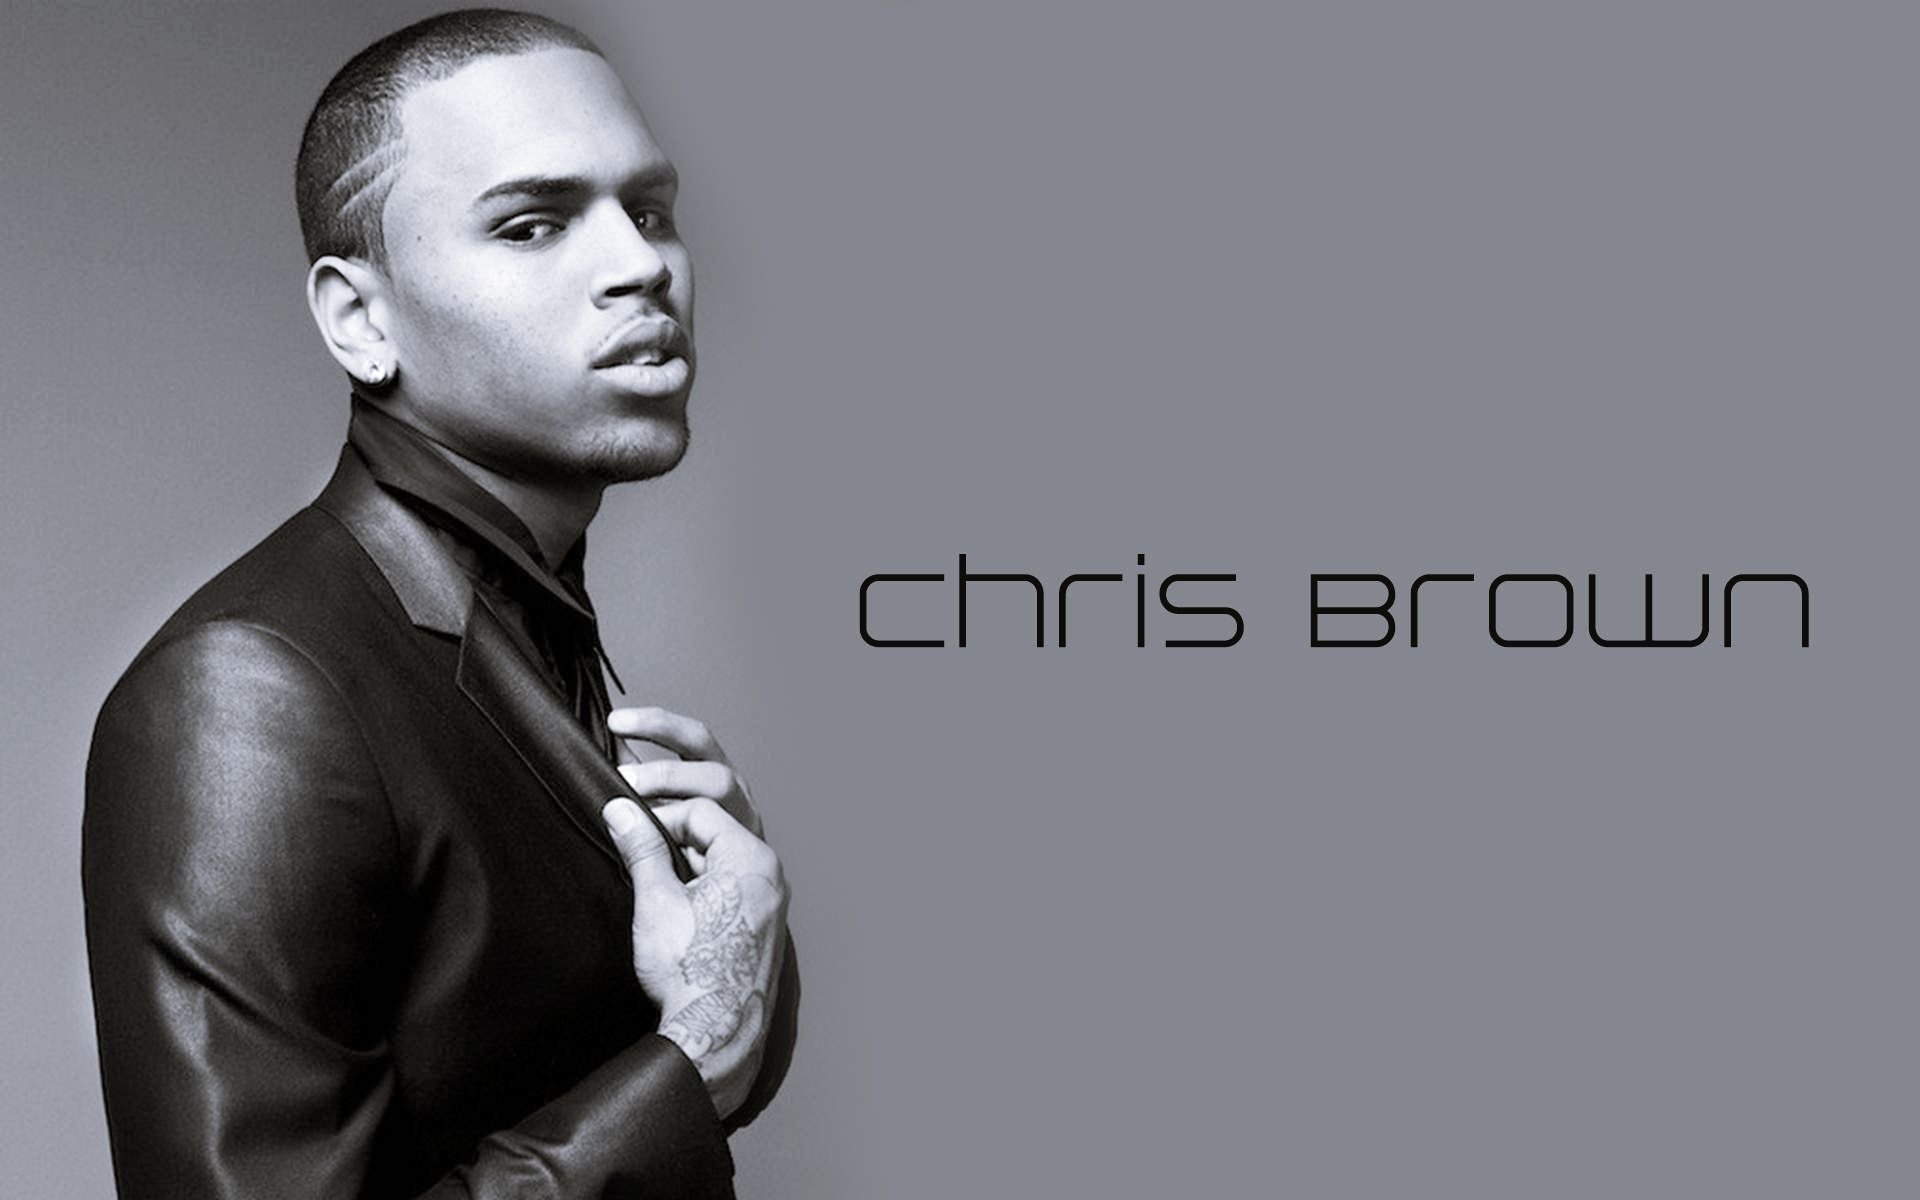 chris-brown-2016-tumblr-wallpaper